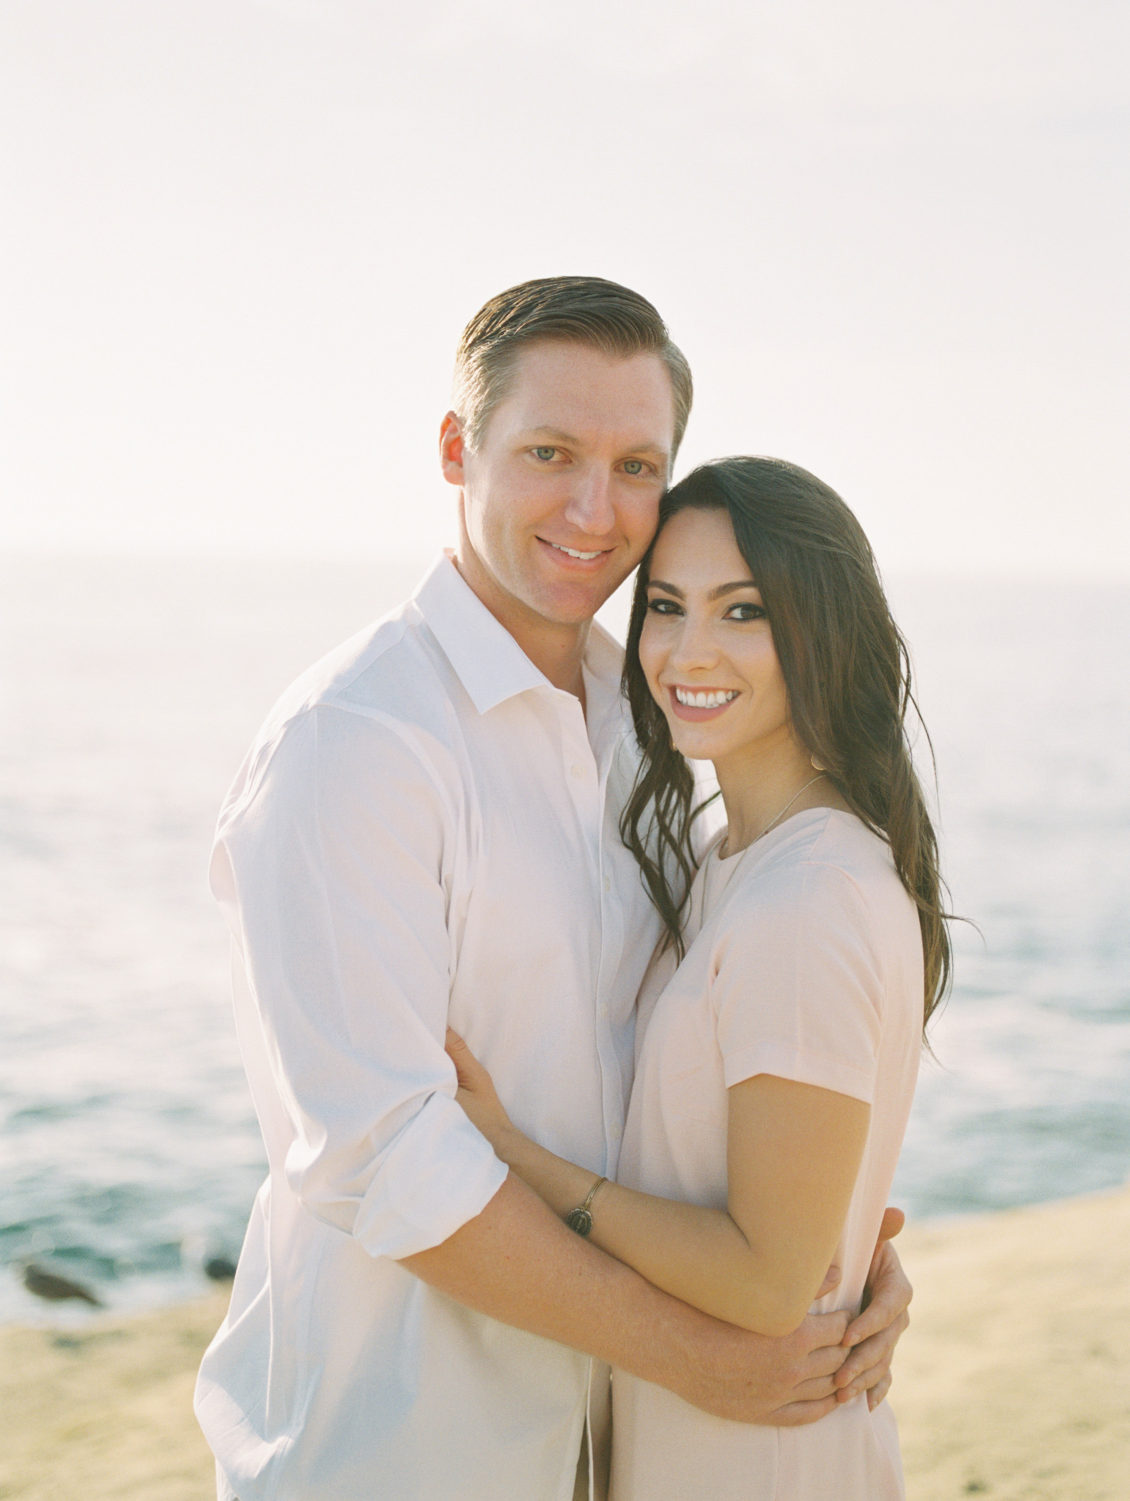 nick-and-laura-sunset-cliffs-san-diego-engagement-photos-3-1130x1501.jpg